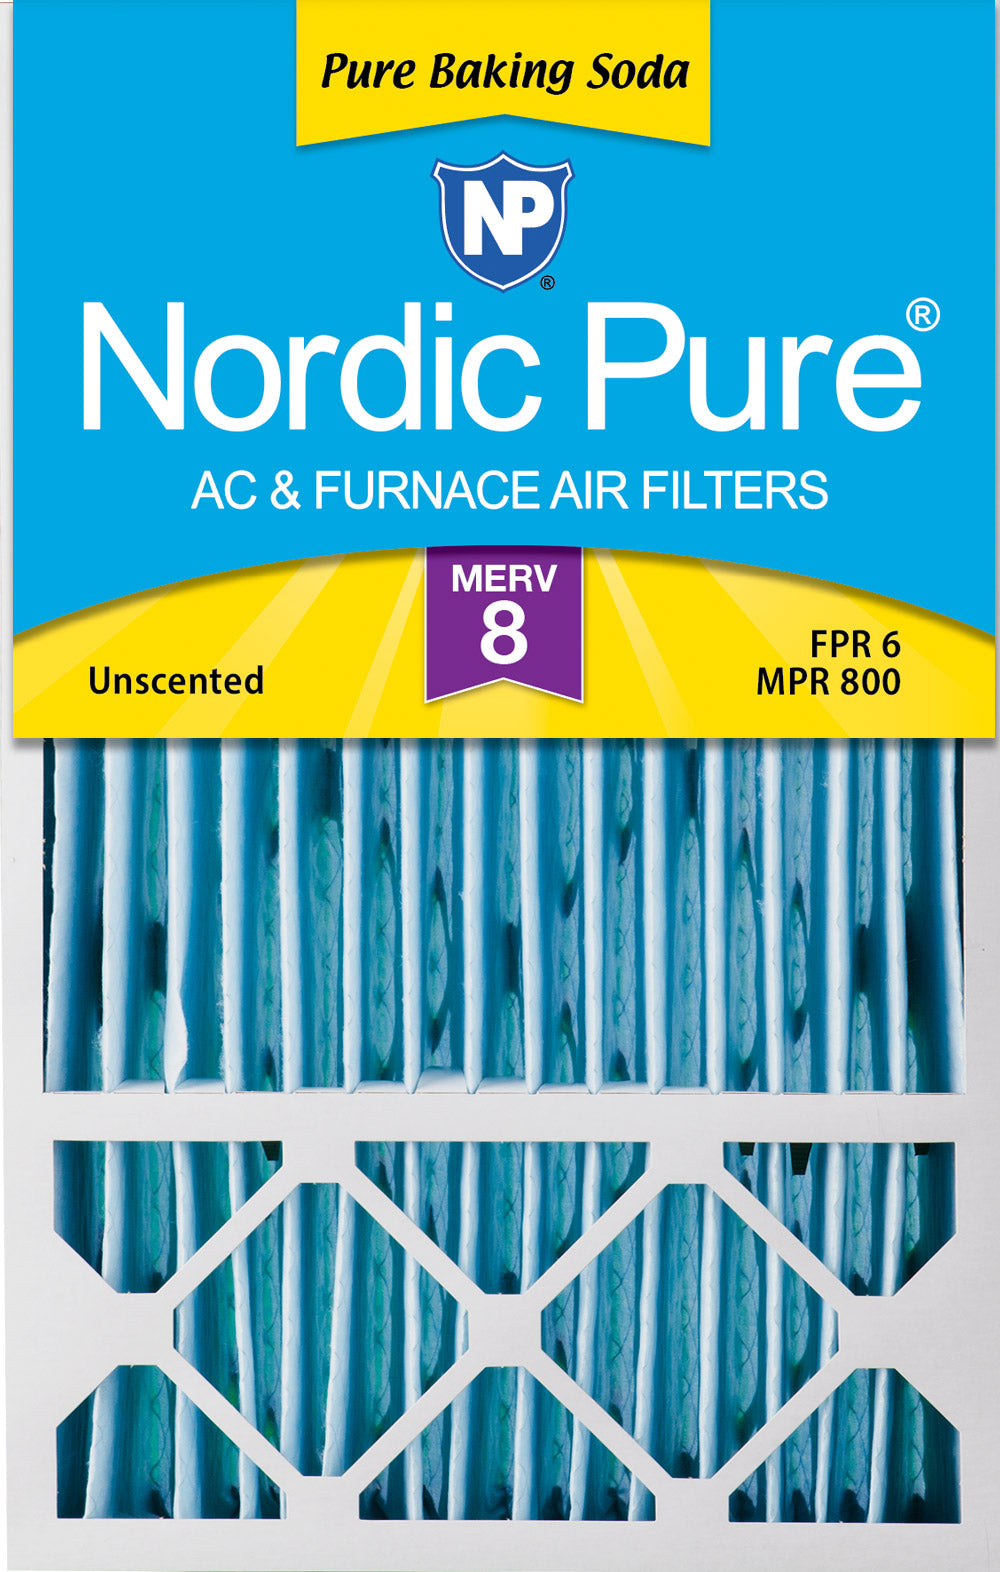 16x25x5 (4 3/8) Pure Baking Soda Odor Deodorizing Honeywell/Lennox Rep Air Filters 1 Pack